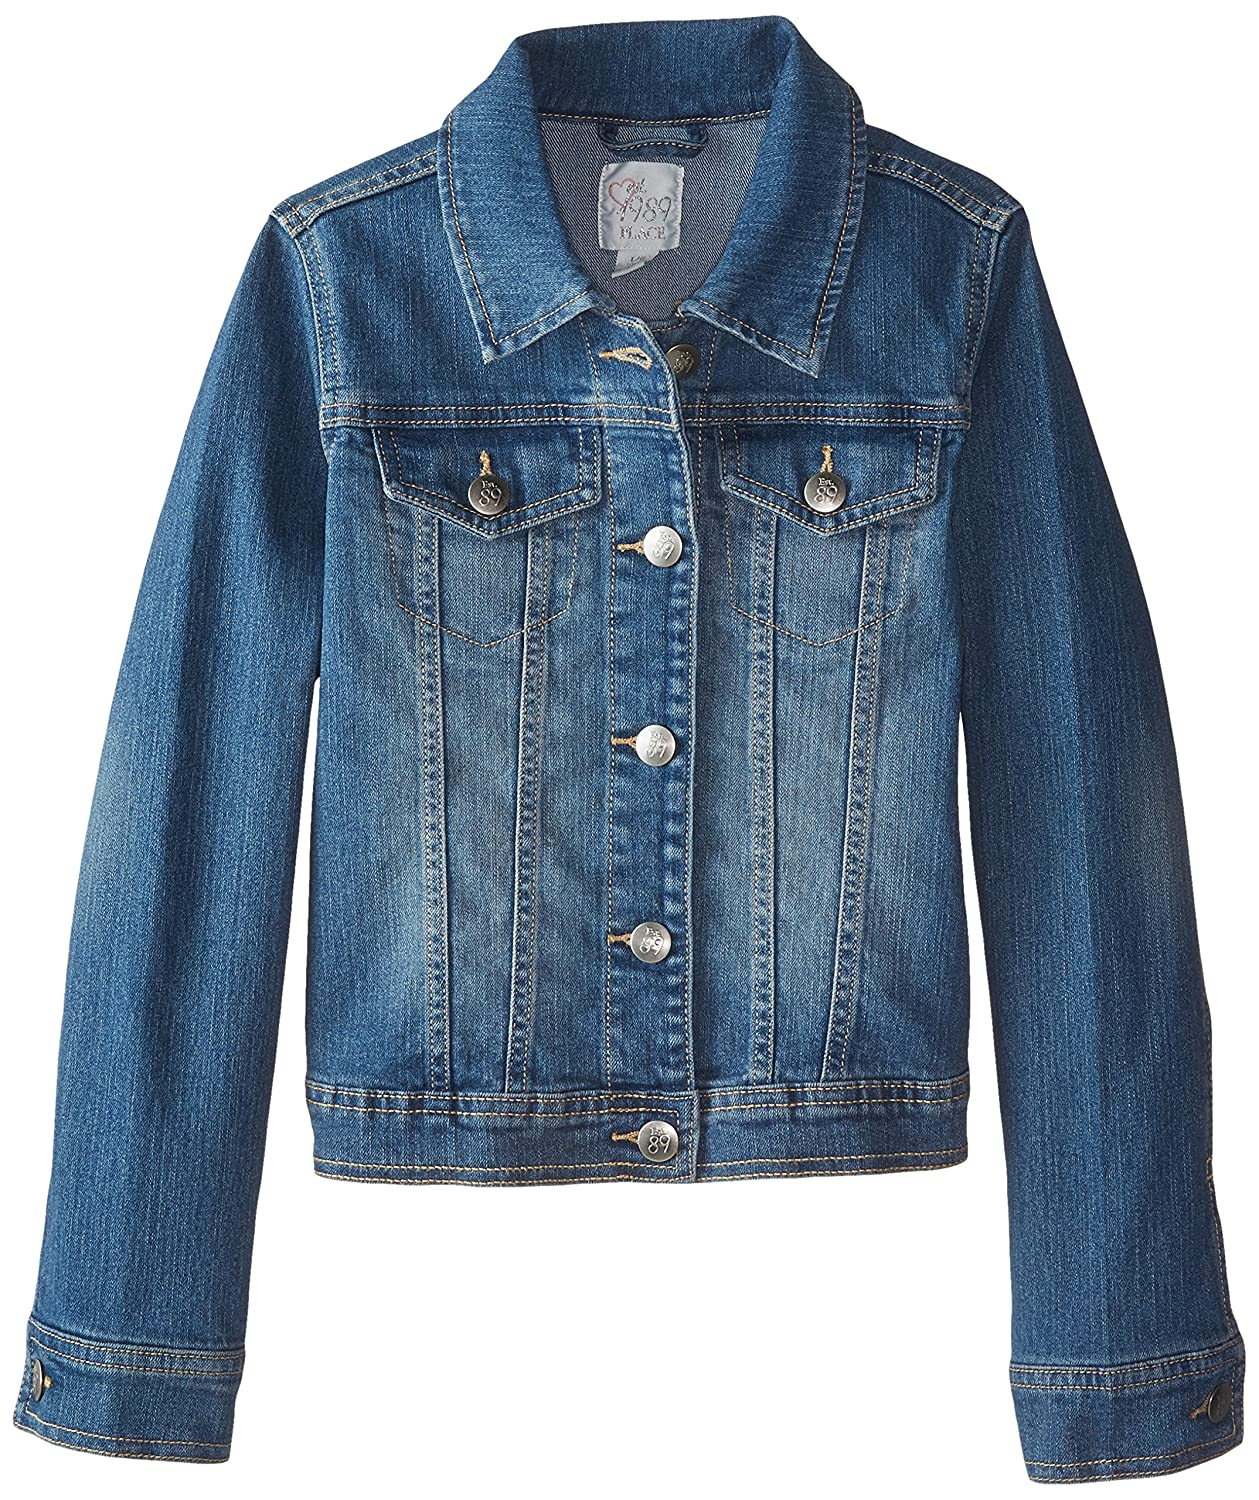 Amazon.com: The Children's Place Girls' Basic Denim Jacket: Clothing